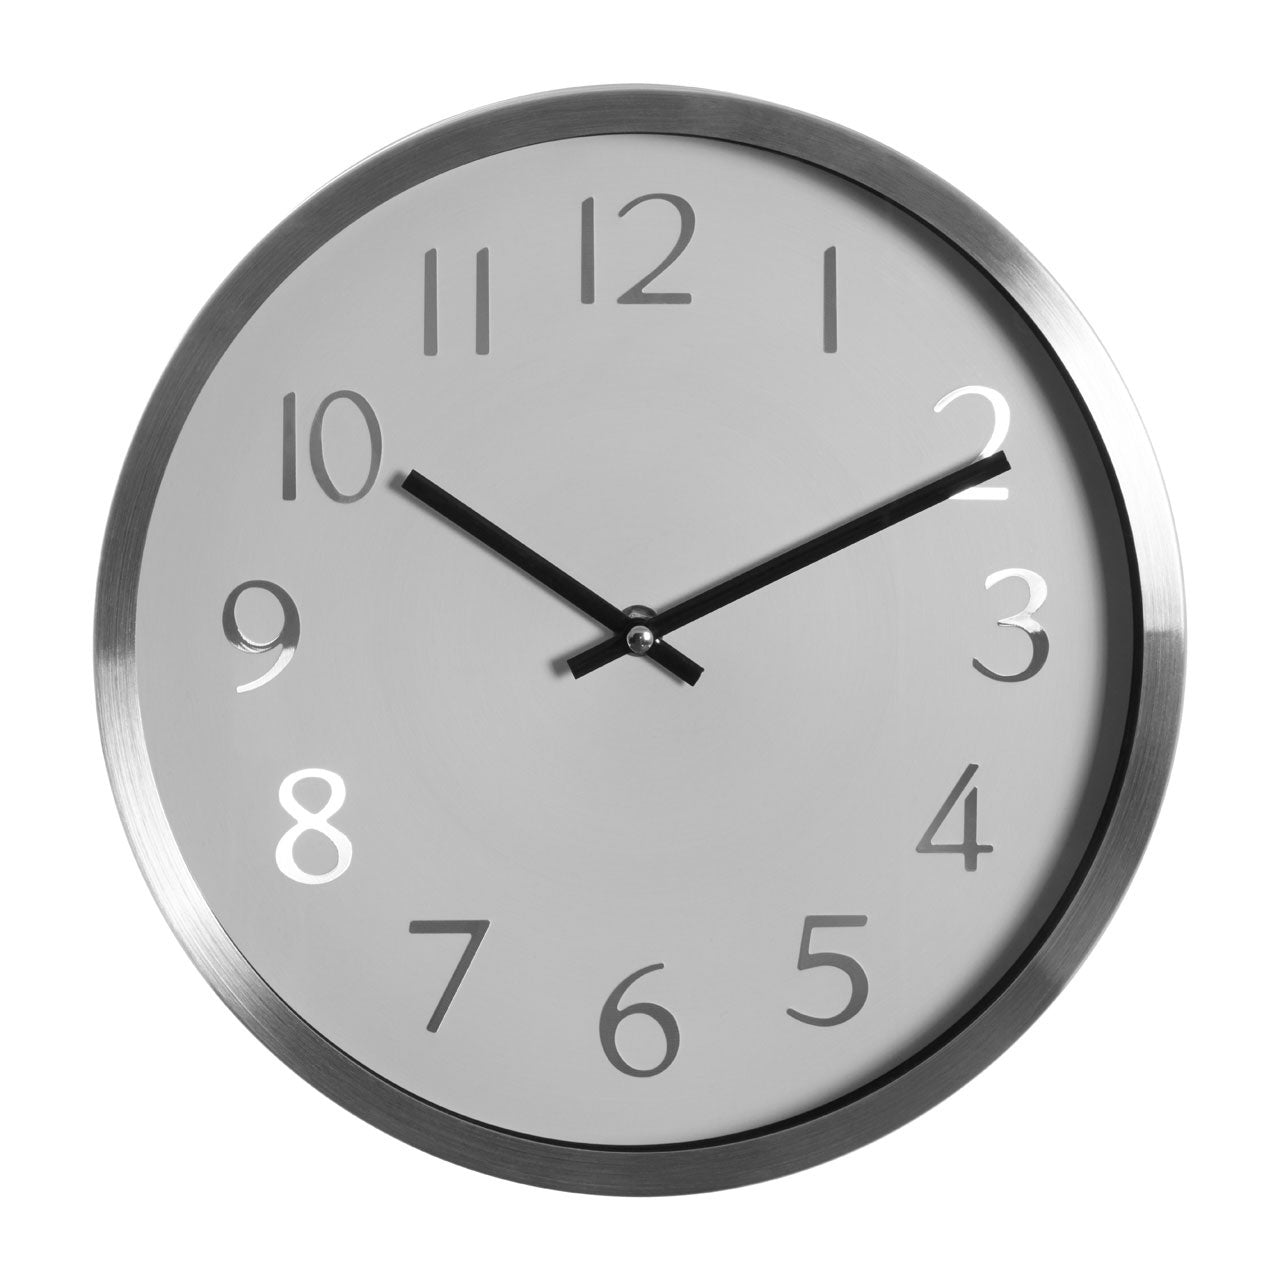 Hometime Black Case Silent Sweep Wall Clock Plastic Large Round Home Widdop ii